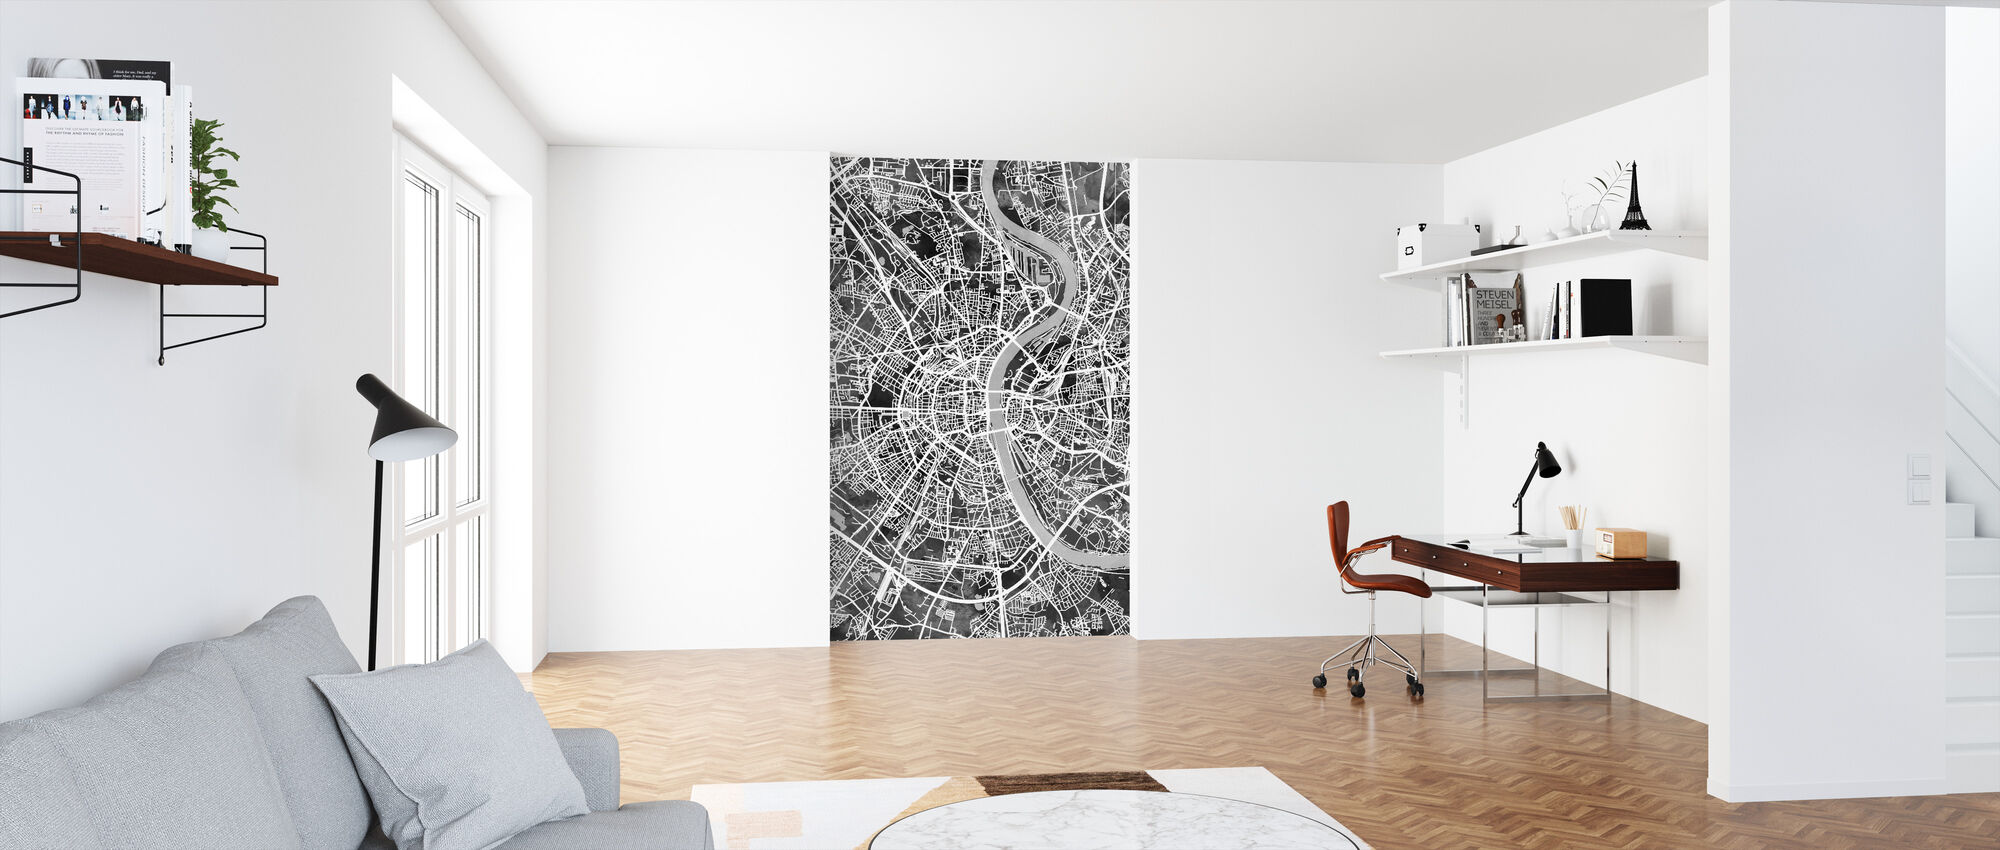 Cologne Germany City Map - Wallpaper - Office